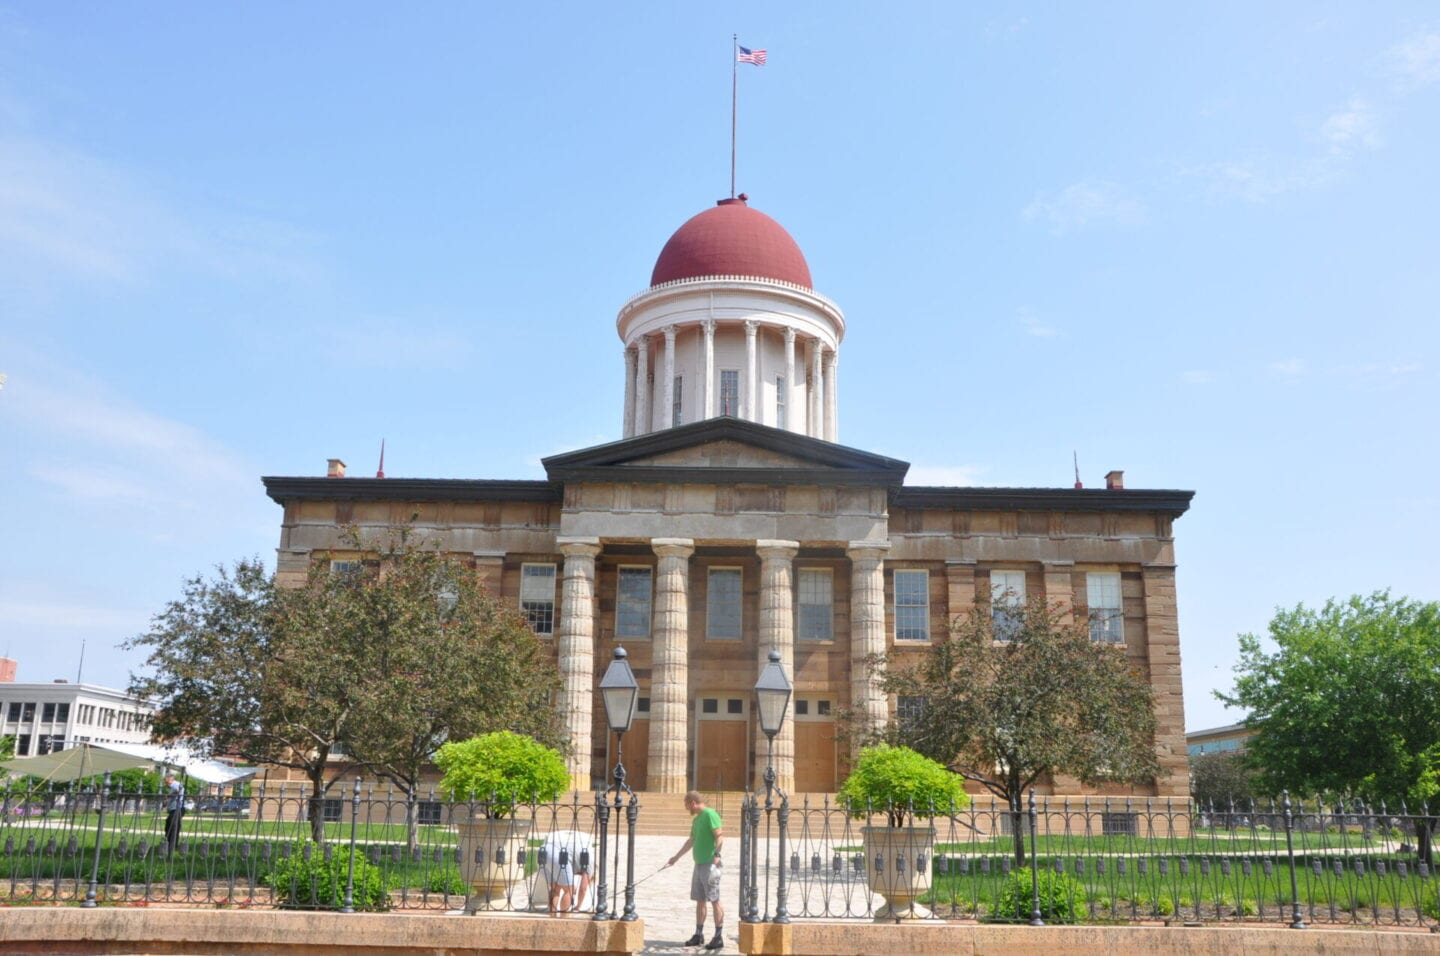 Old Capitol Building Springfield Illinois